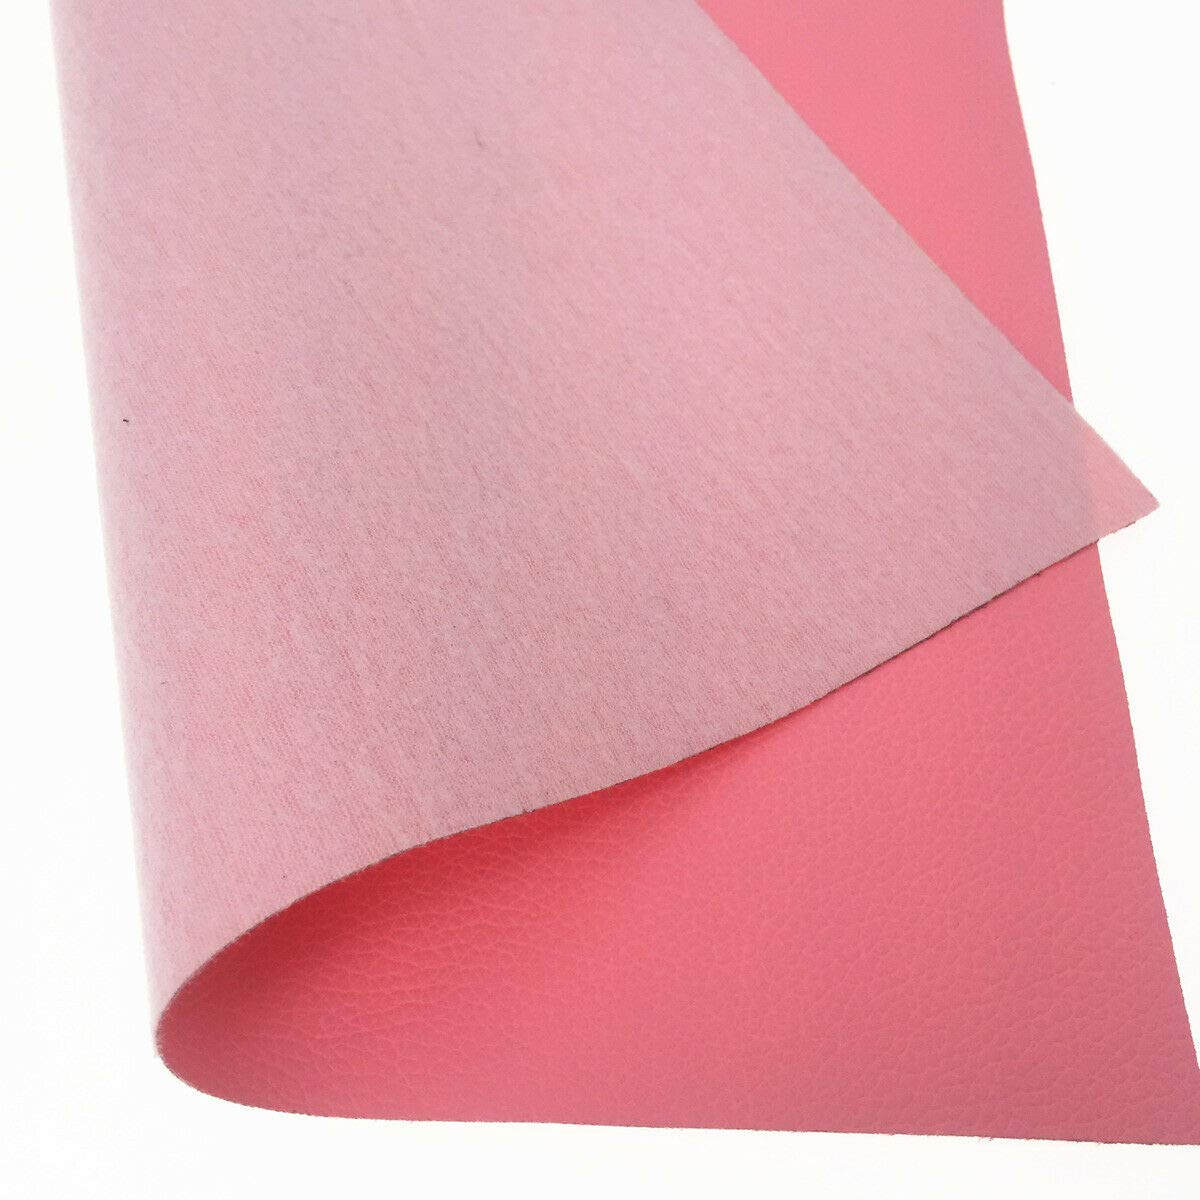 ZAIONE A4 Size Leather Sheets 3pcs 8X12 21cm x 30cm Gold,Pink,Blue Smooth Glossy Mirrored Metallic Faux Leather Fabric for Shoes Bag Bow Earrings Making DIY Craft Mix Color-A